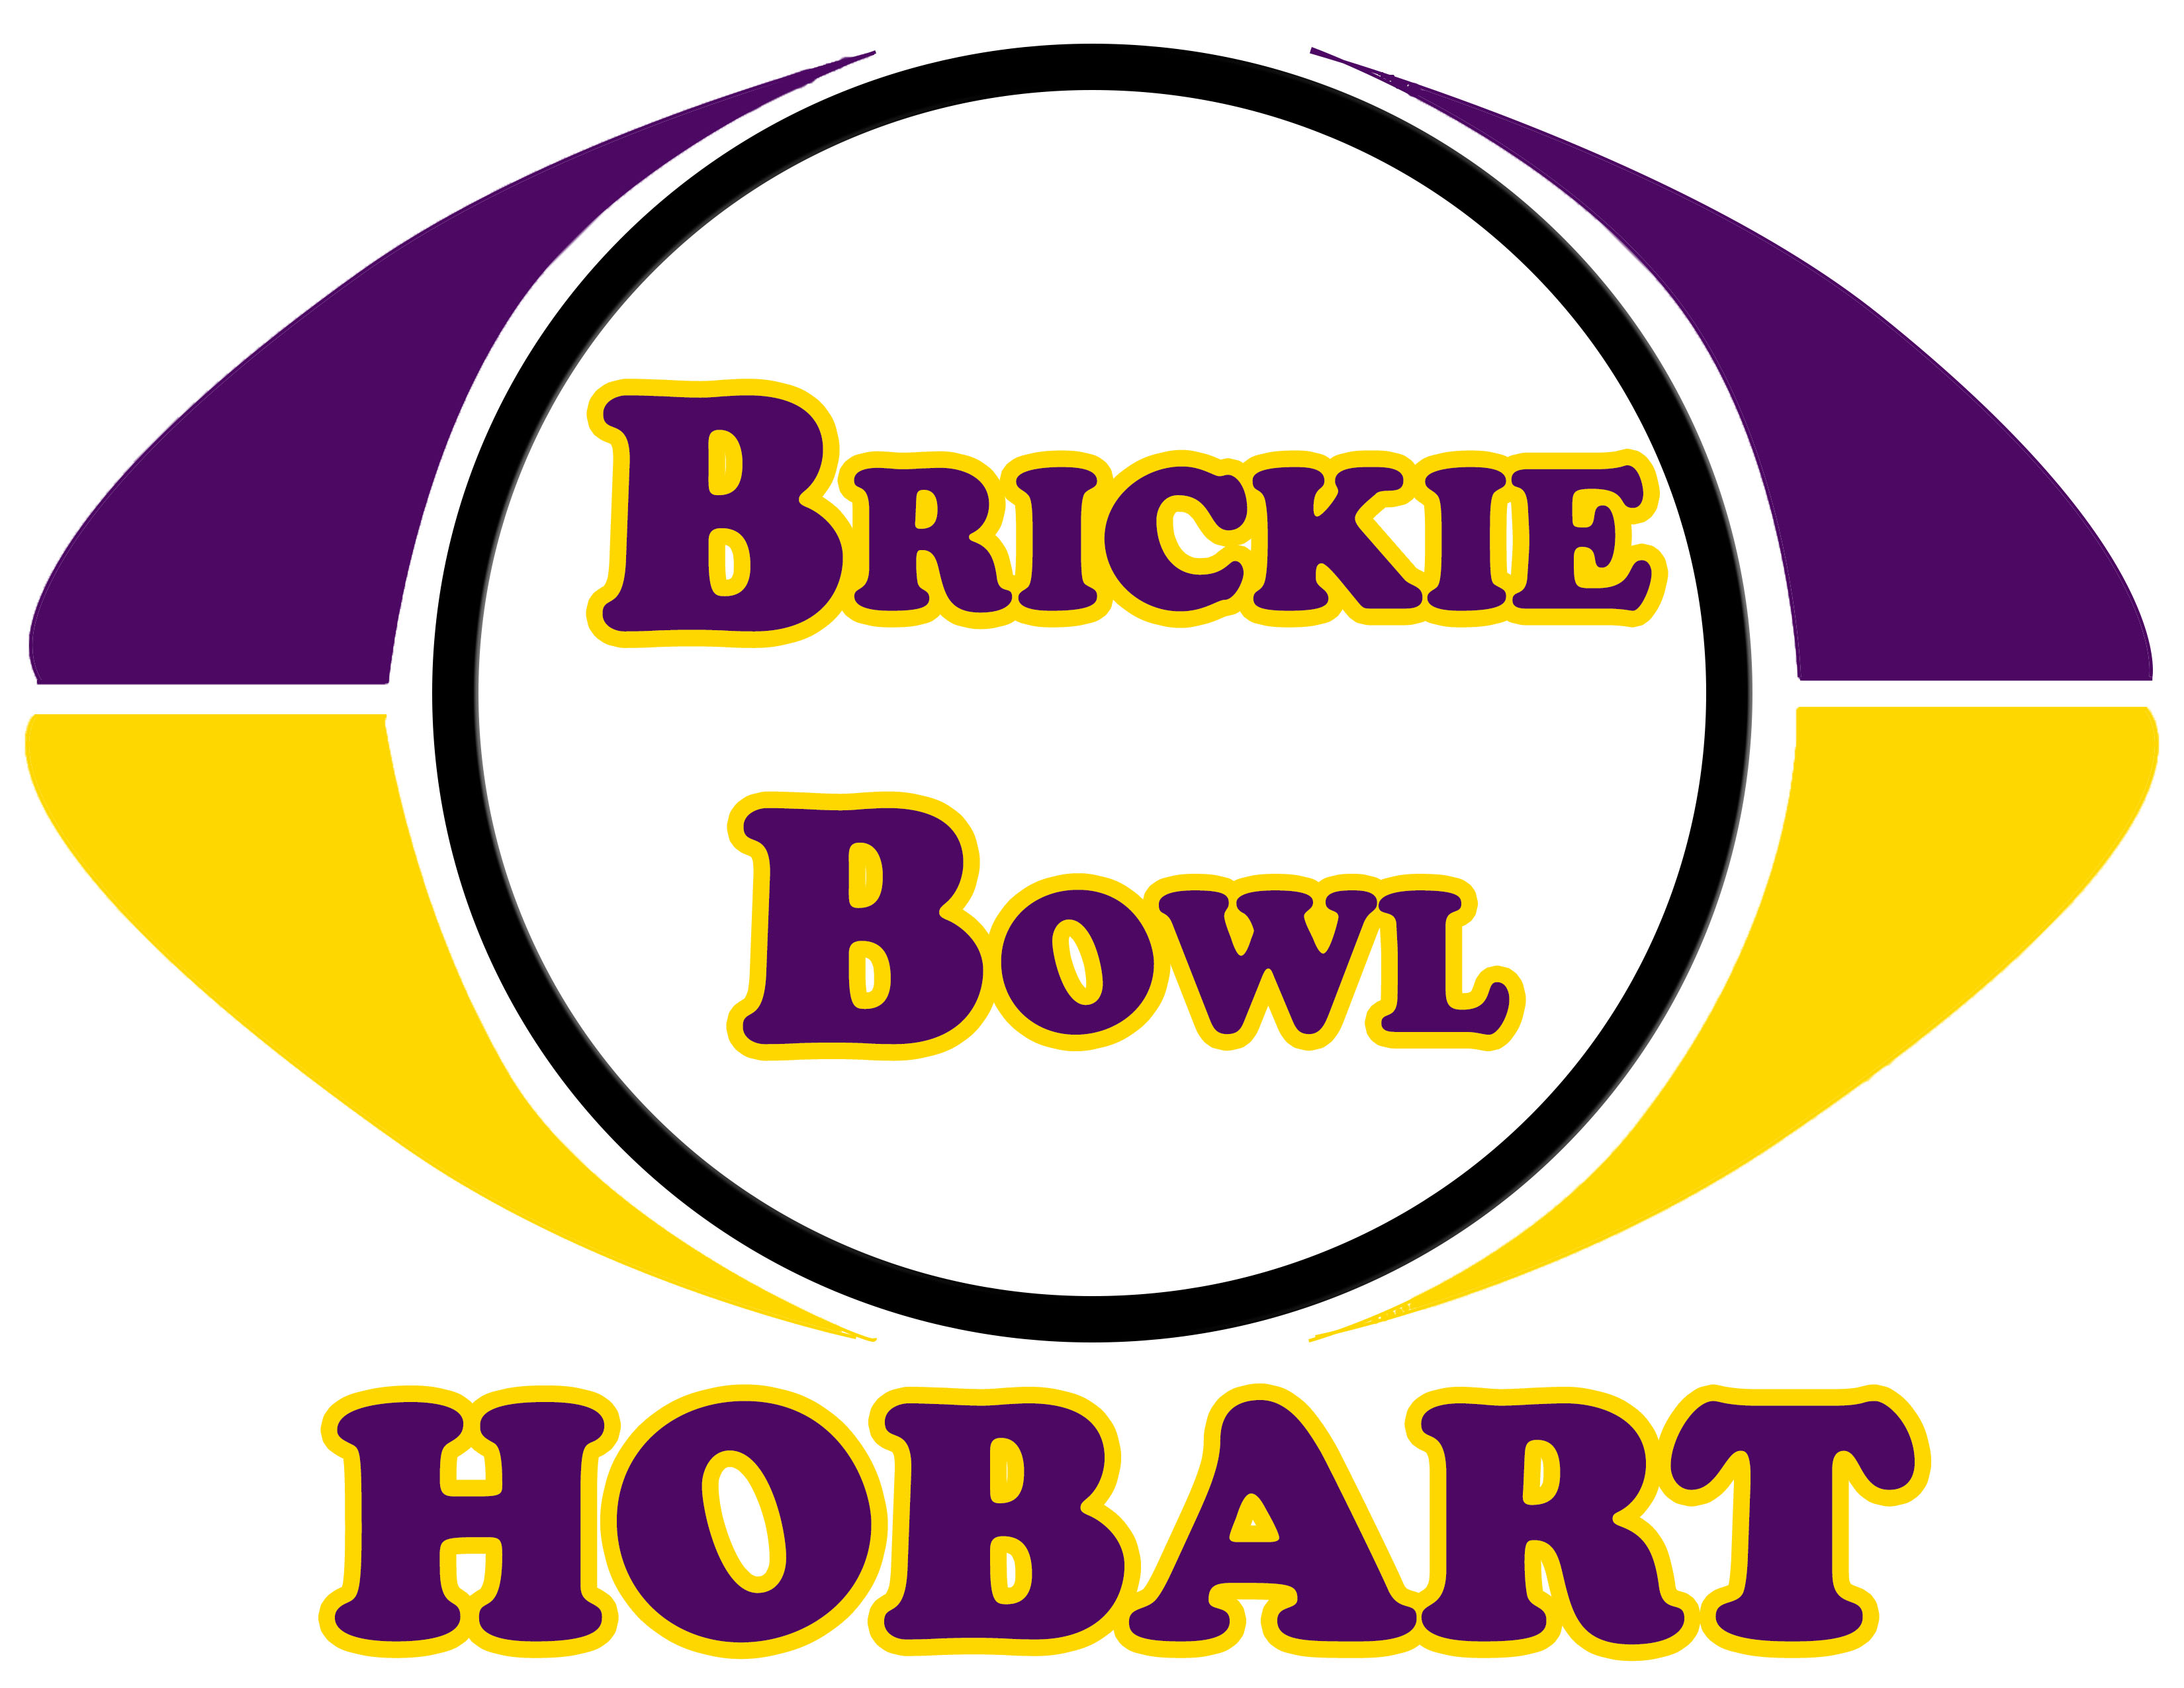 Brickie Bowl Logo